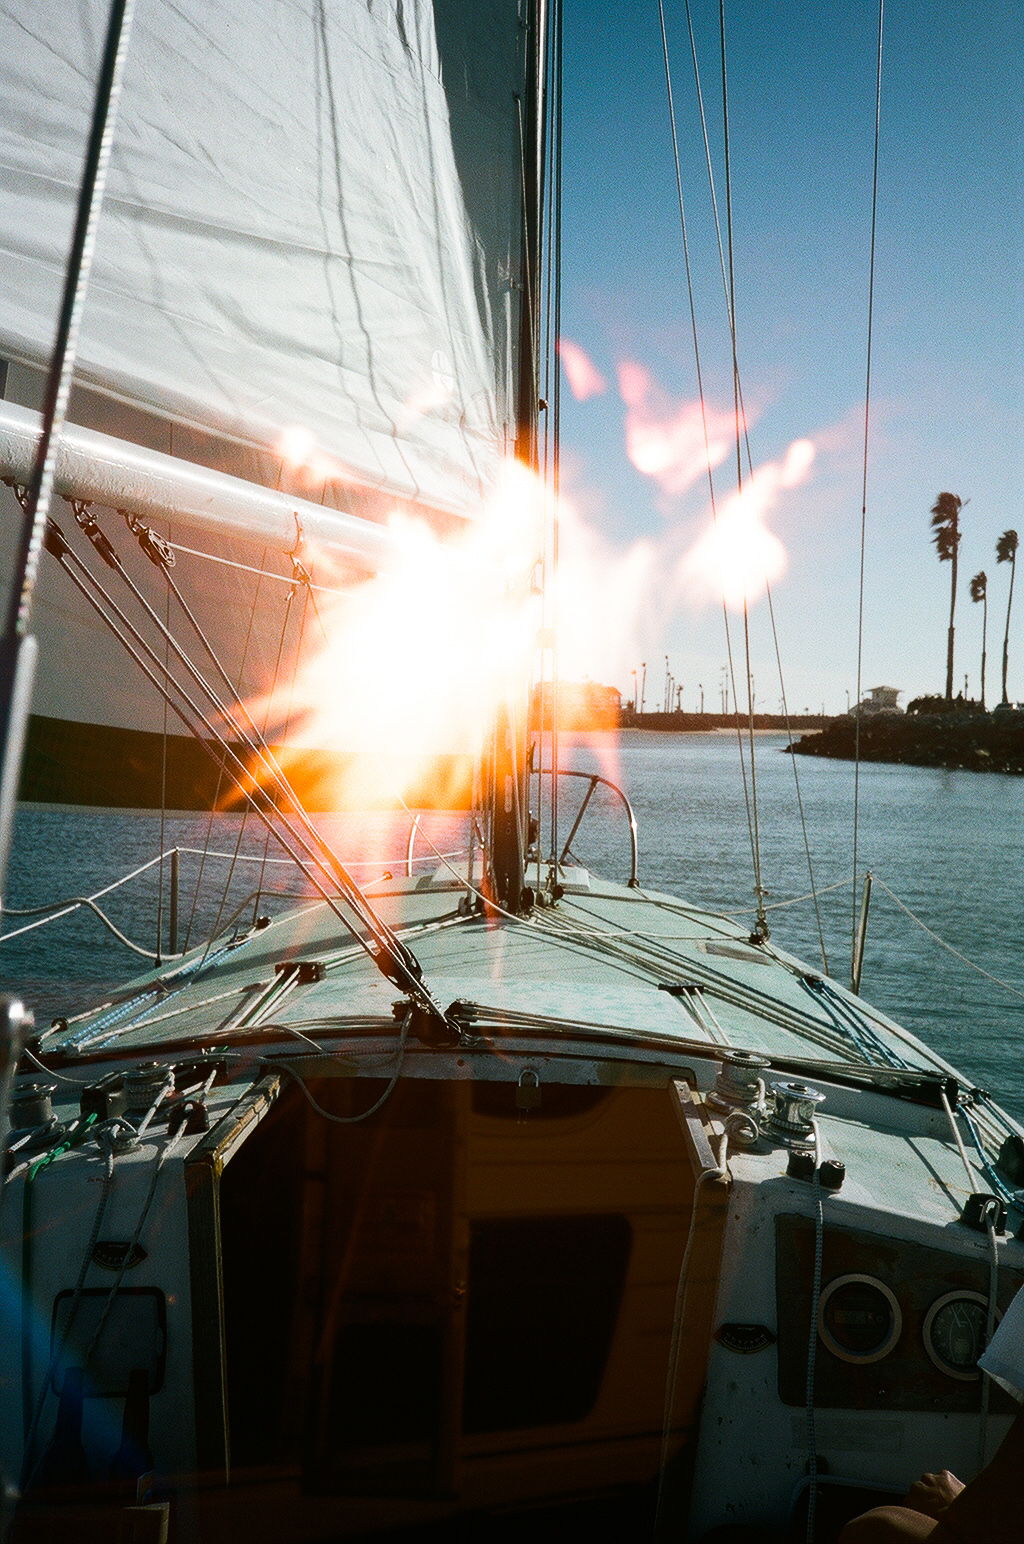 Launching fireworks off a boat in the harbor. Just kidding... This is a photo of a fire shot over a photo of sailing out of Channel Islands harbor.